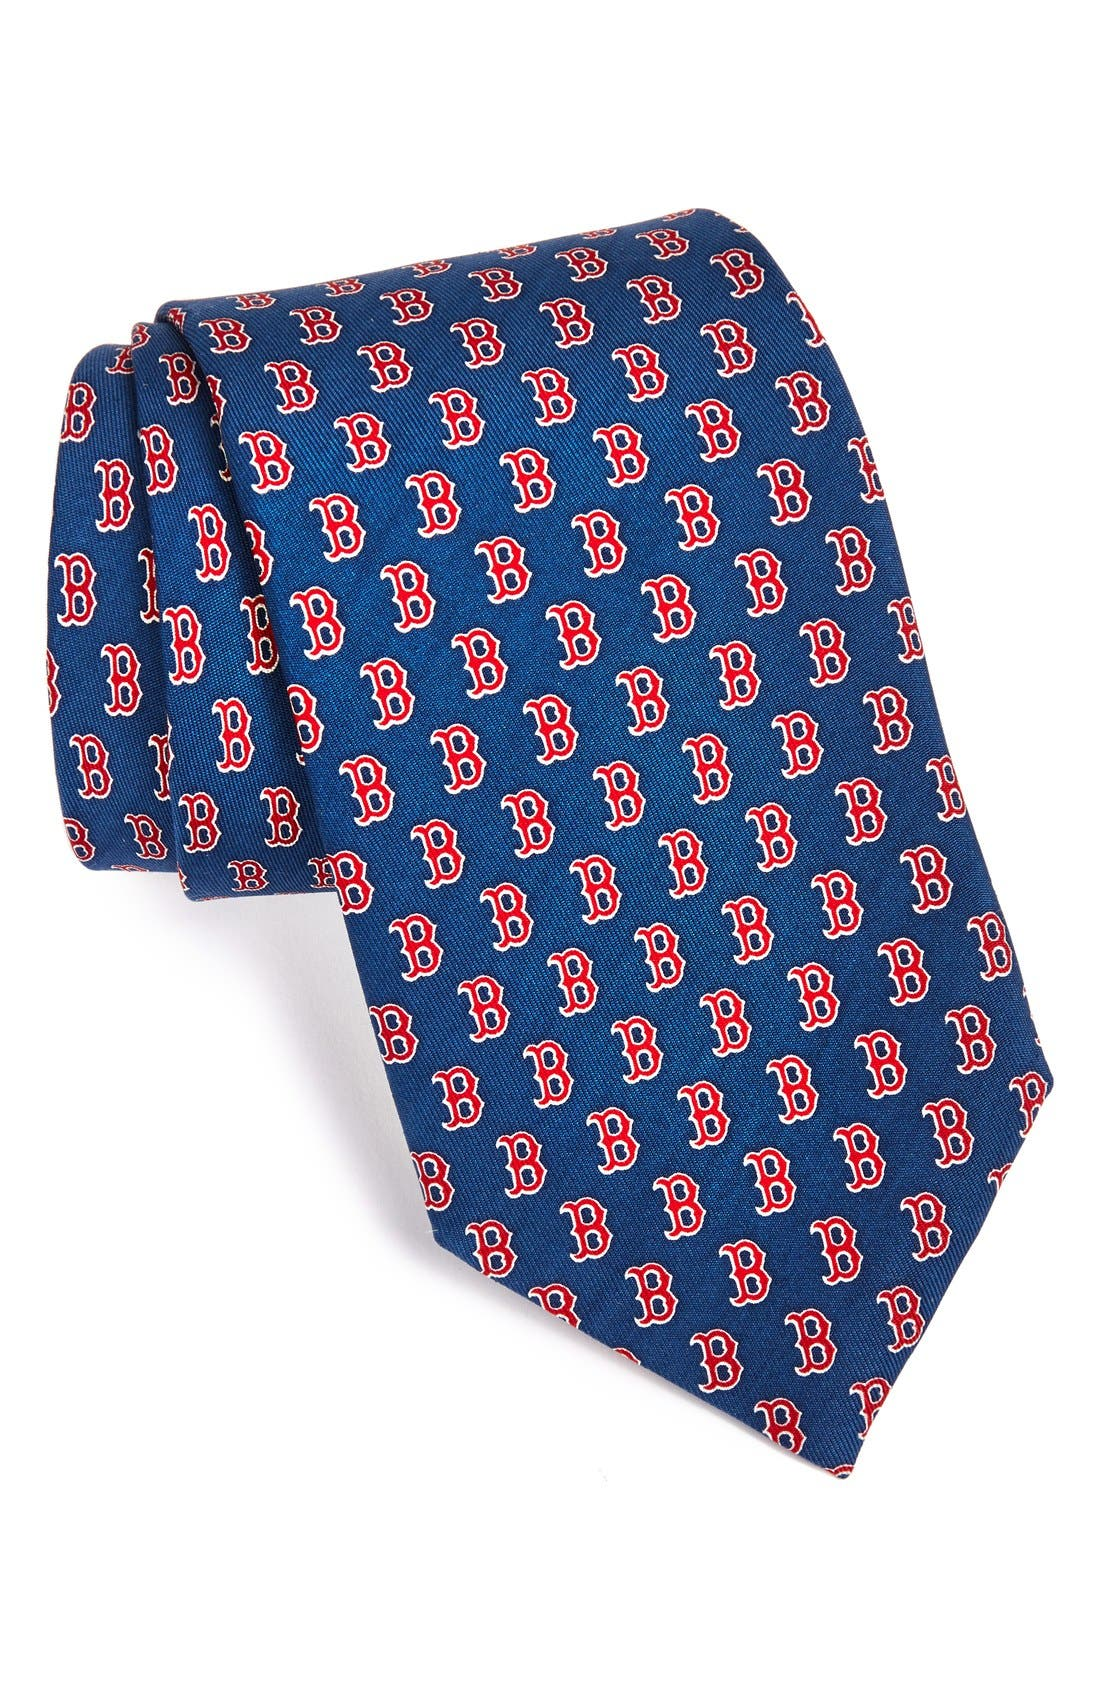 Alternate Image 1 Selected - vineyard vines Boston Red Sox Silk Tie